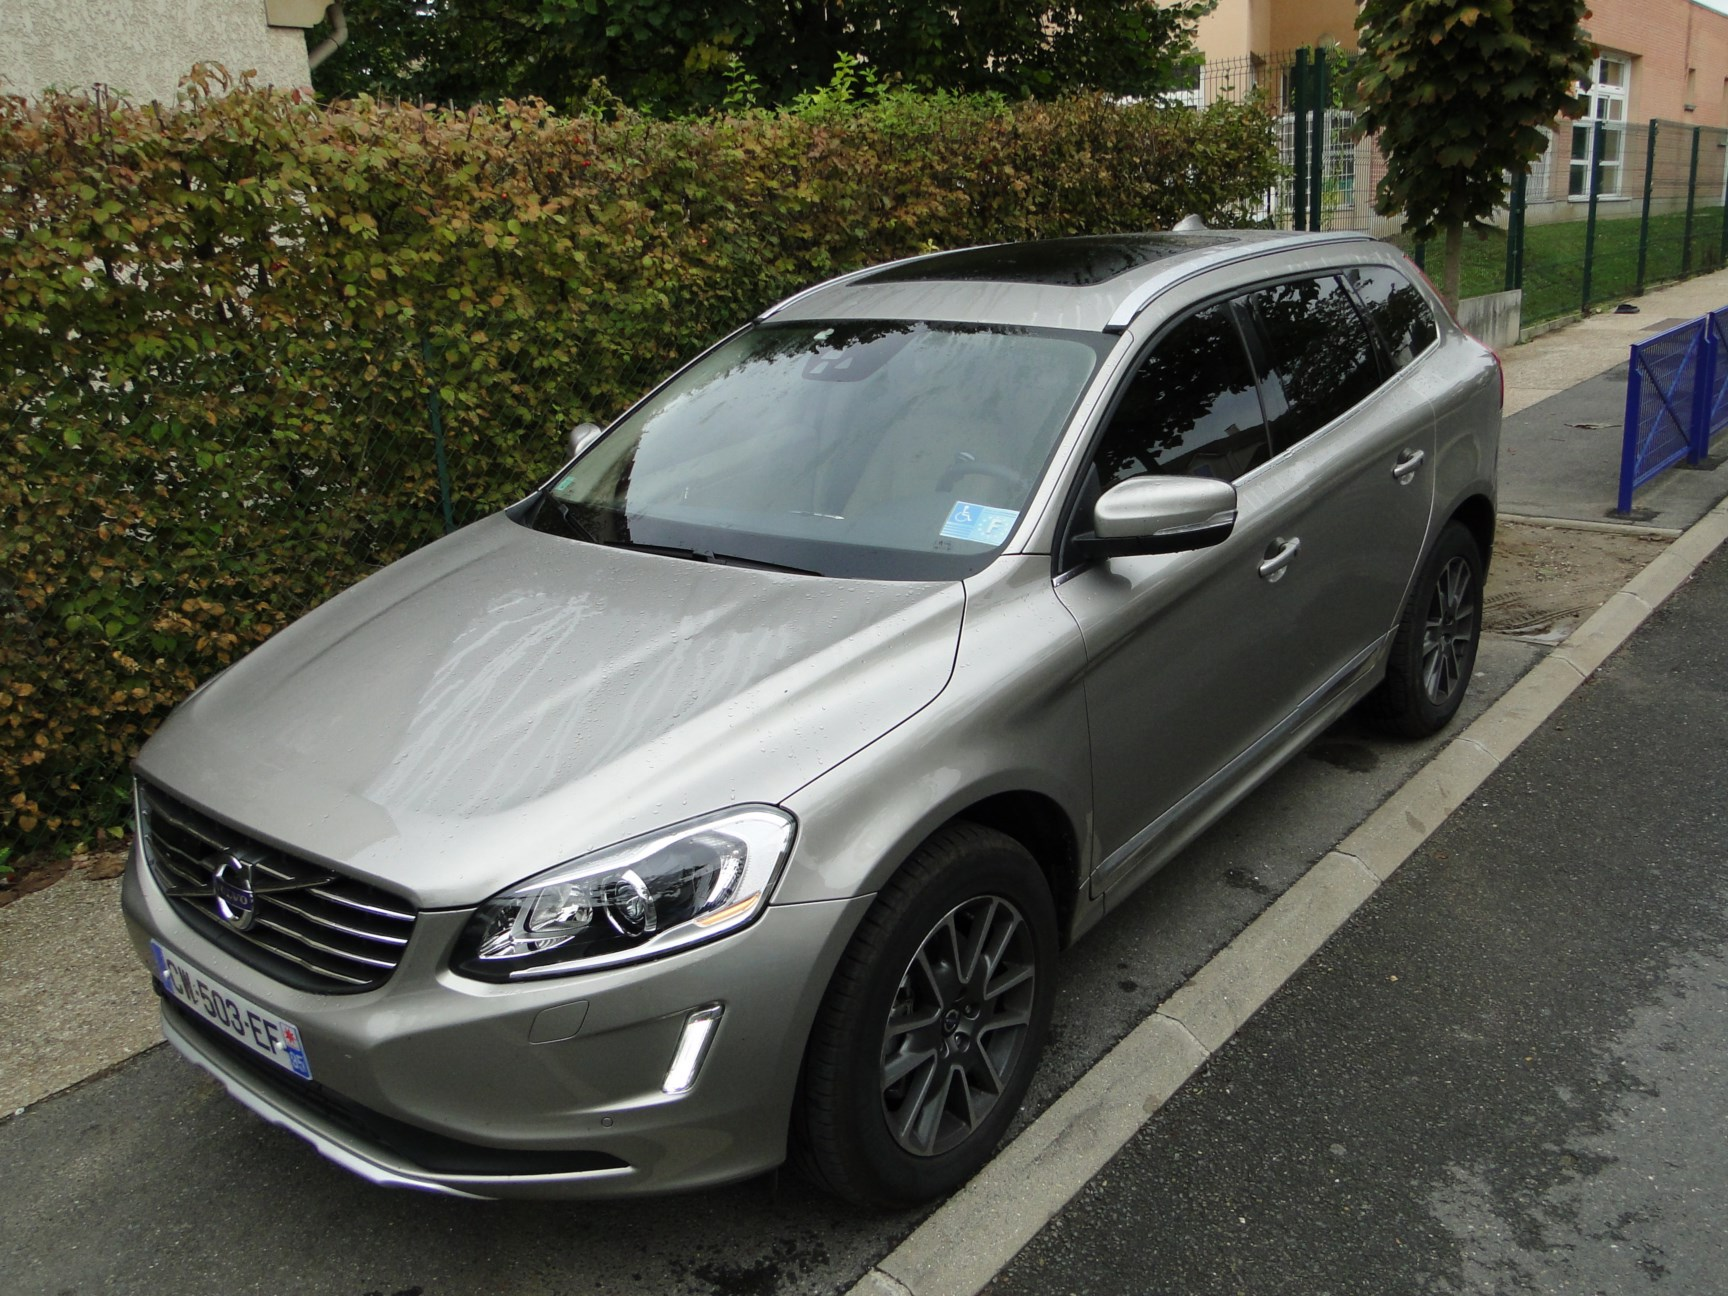 du volvo xc60 le topic officiel page 538 xc60 volvo forum marques. Black Bedroom Furniture Sets. Home Design Ideas